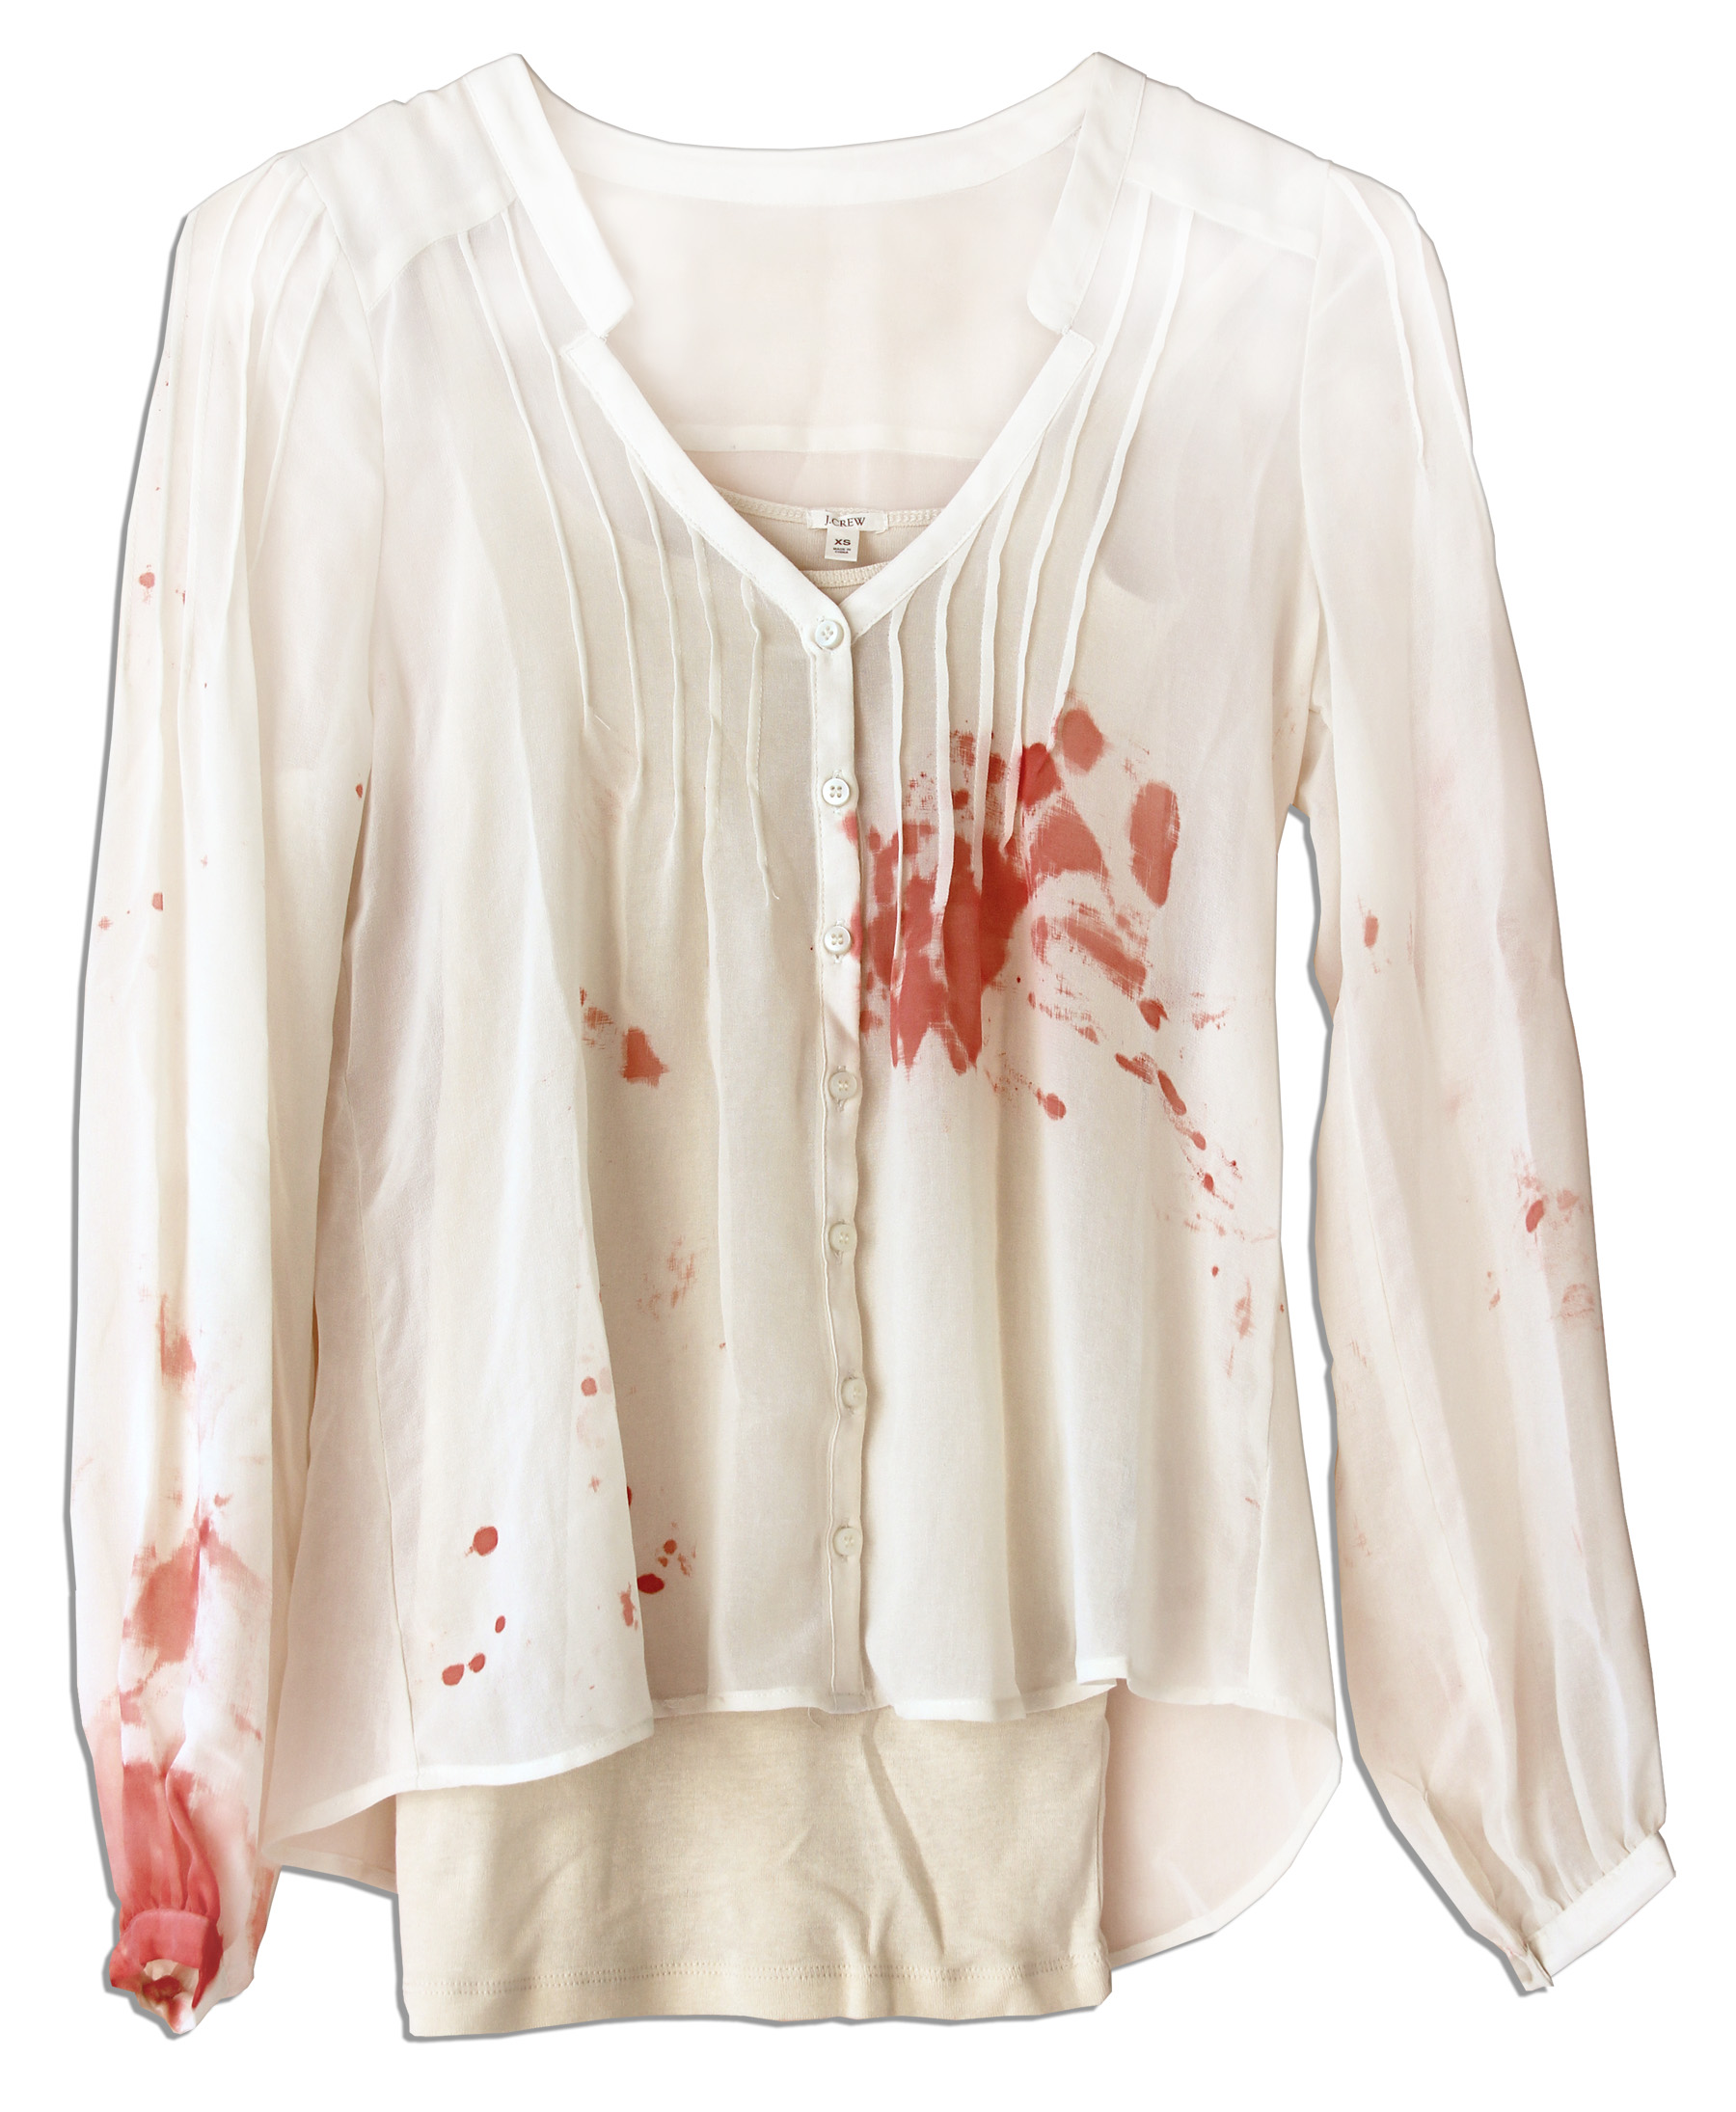 Wine Stained Blouse Anlis